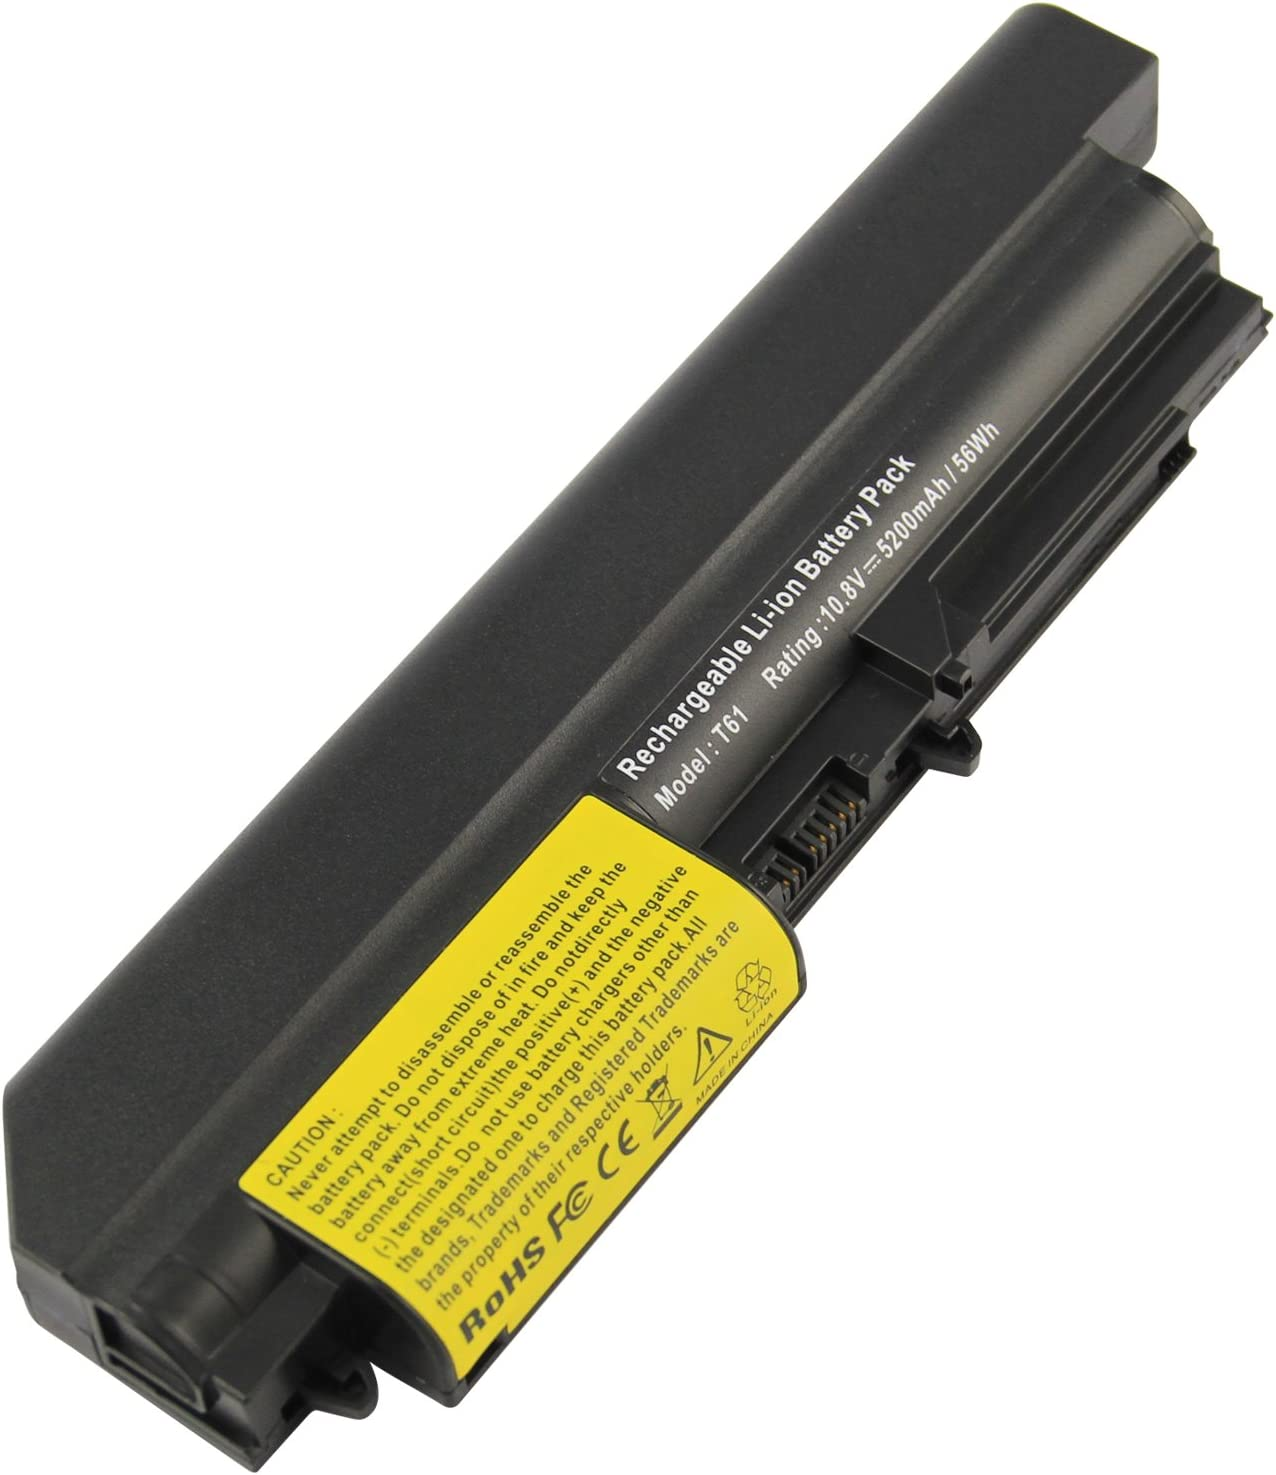 Futurebatt 42T5264 Laptop Battery for Lenovo IBM ThinkPad R400 T400 T61(Widescreen) R61 T61p R61i R61e 42T5265 42t5230 41U3196 41U3197 41U3198 42T4530 42T4531 42T4532 42T4552 42T4677 42T5225